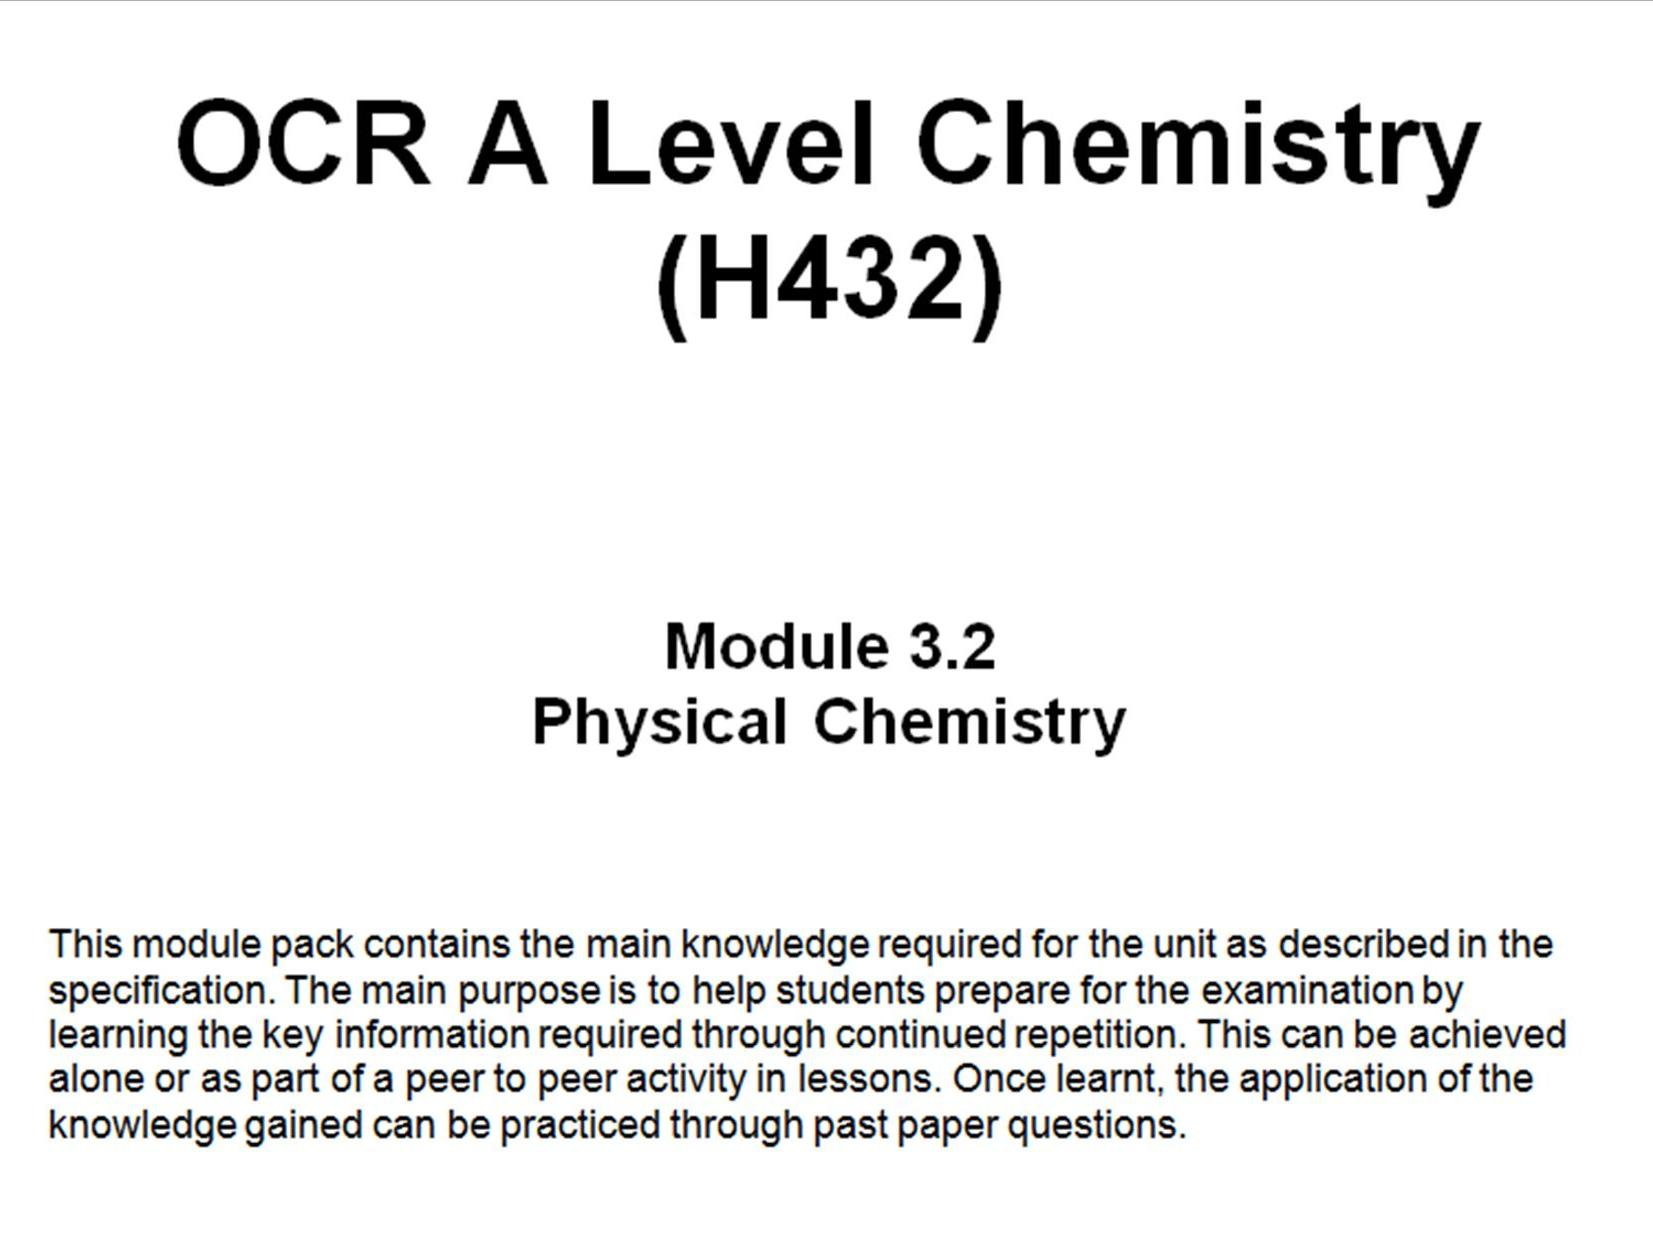 OCR A Level Chemistry (H432) - Complete Module 3 Knowledge pack